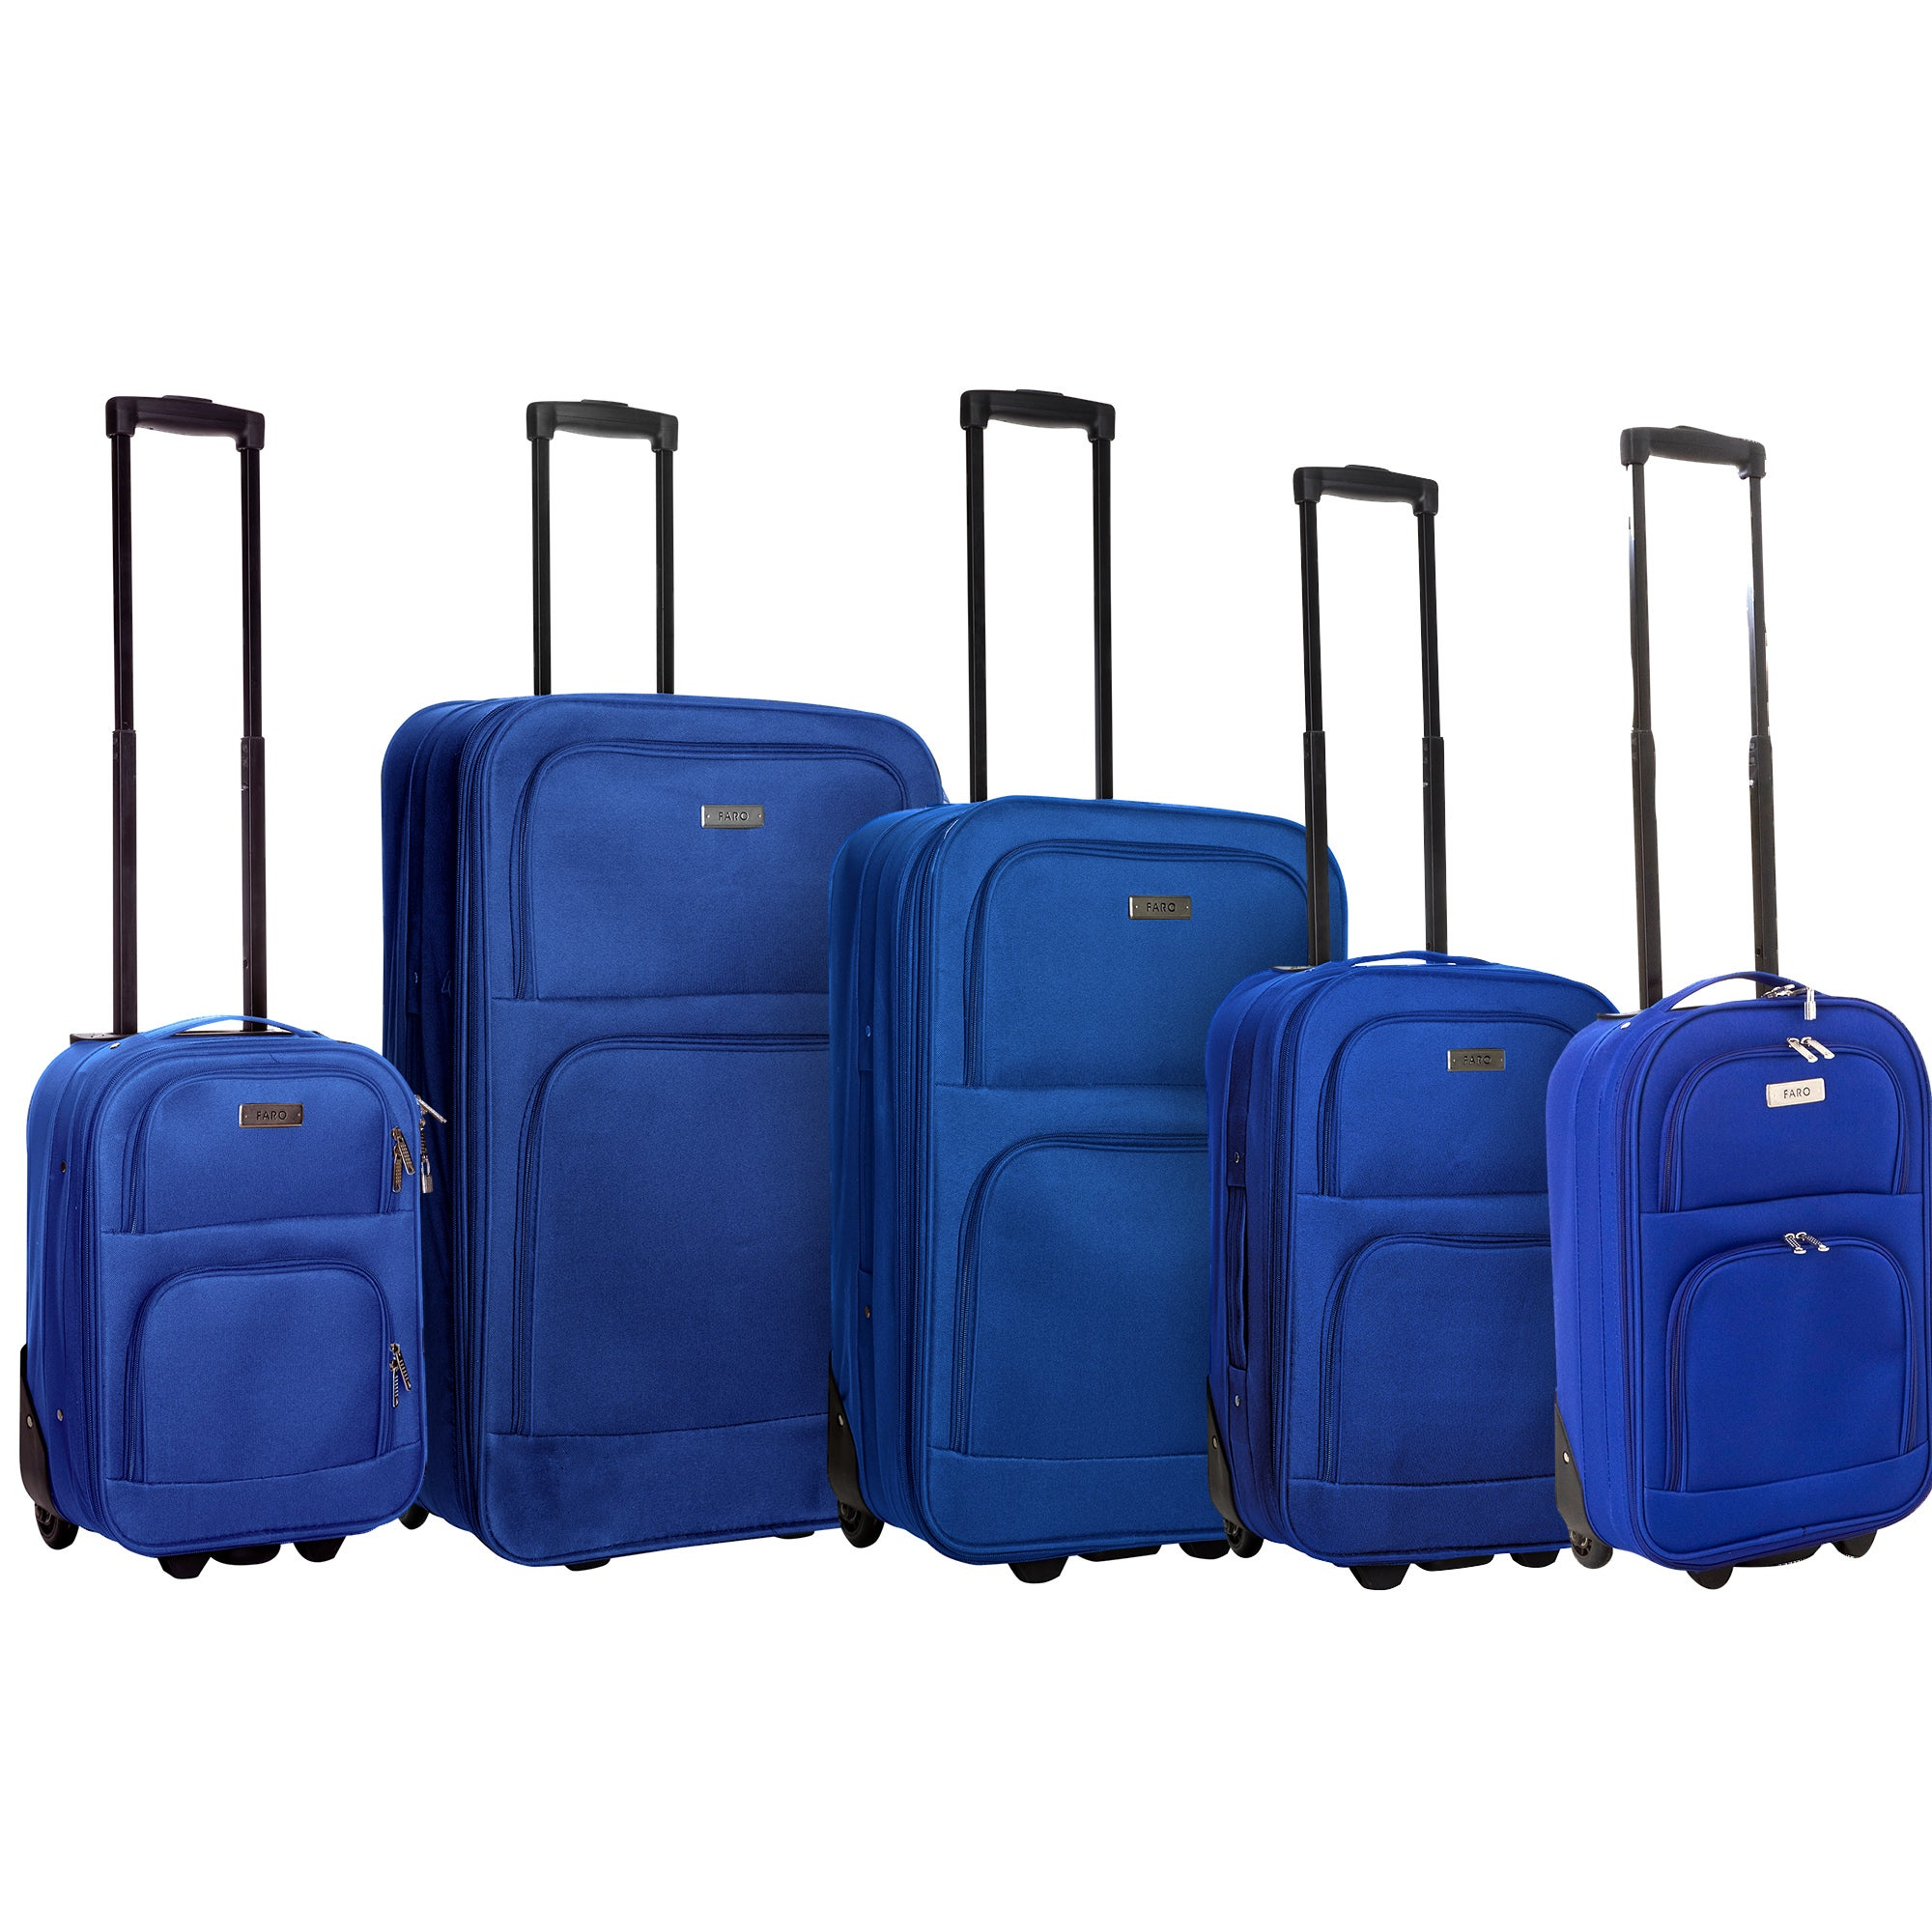 Faro Navy Luggage Collection